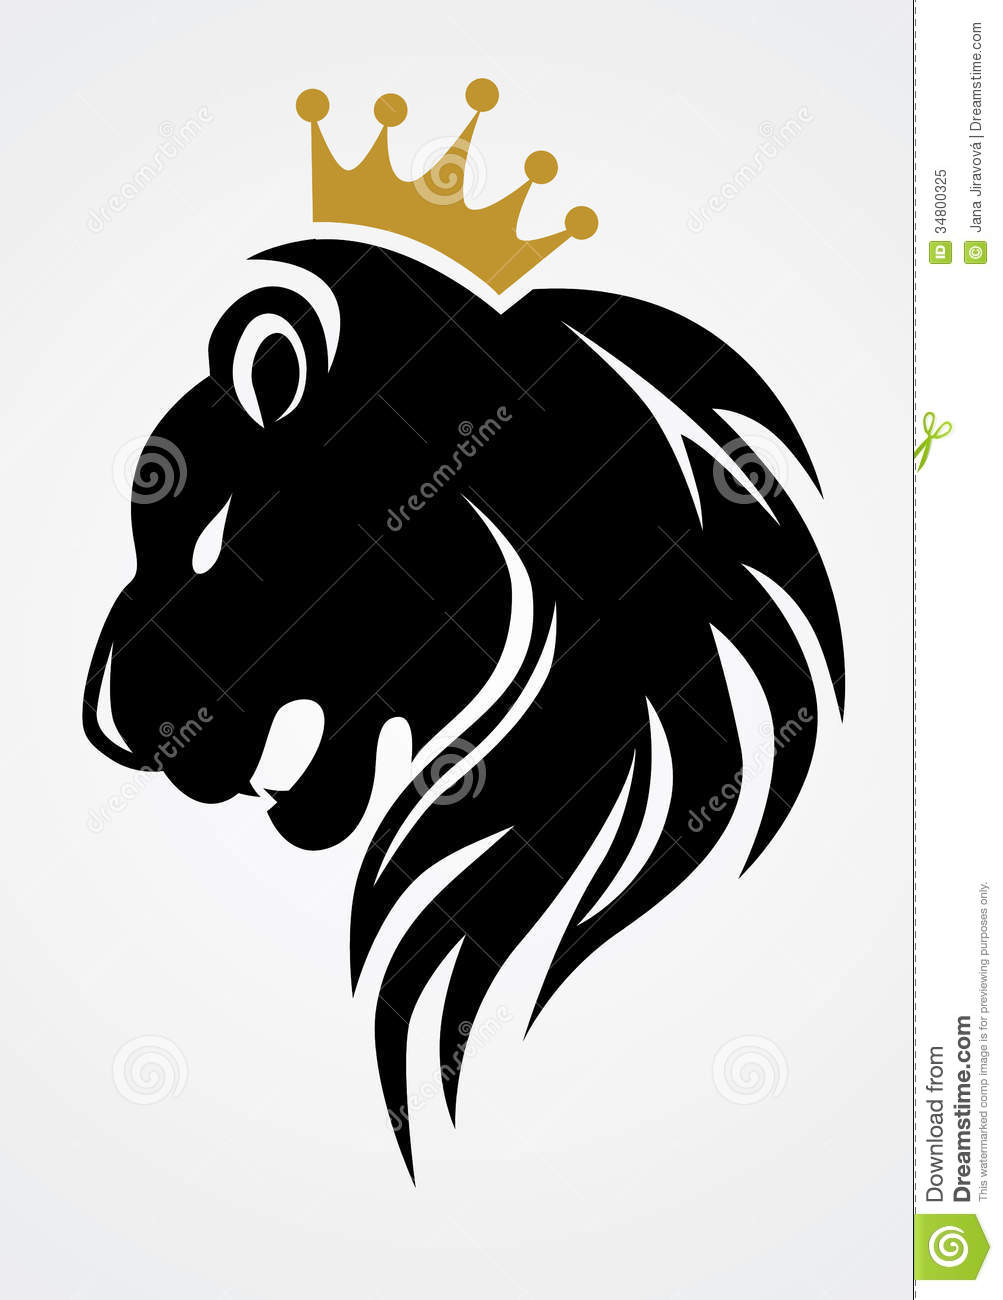 Black Lion With Gold Crown Royalty Free Stock Photo - Image: 34800325